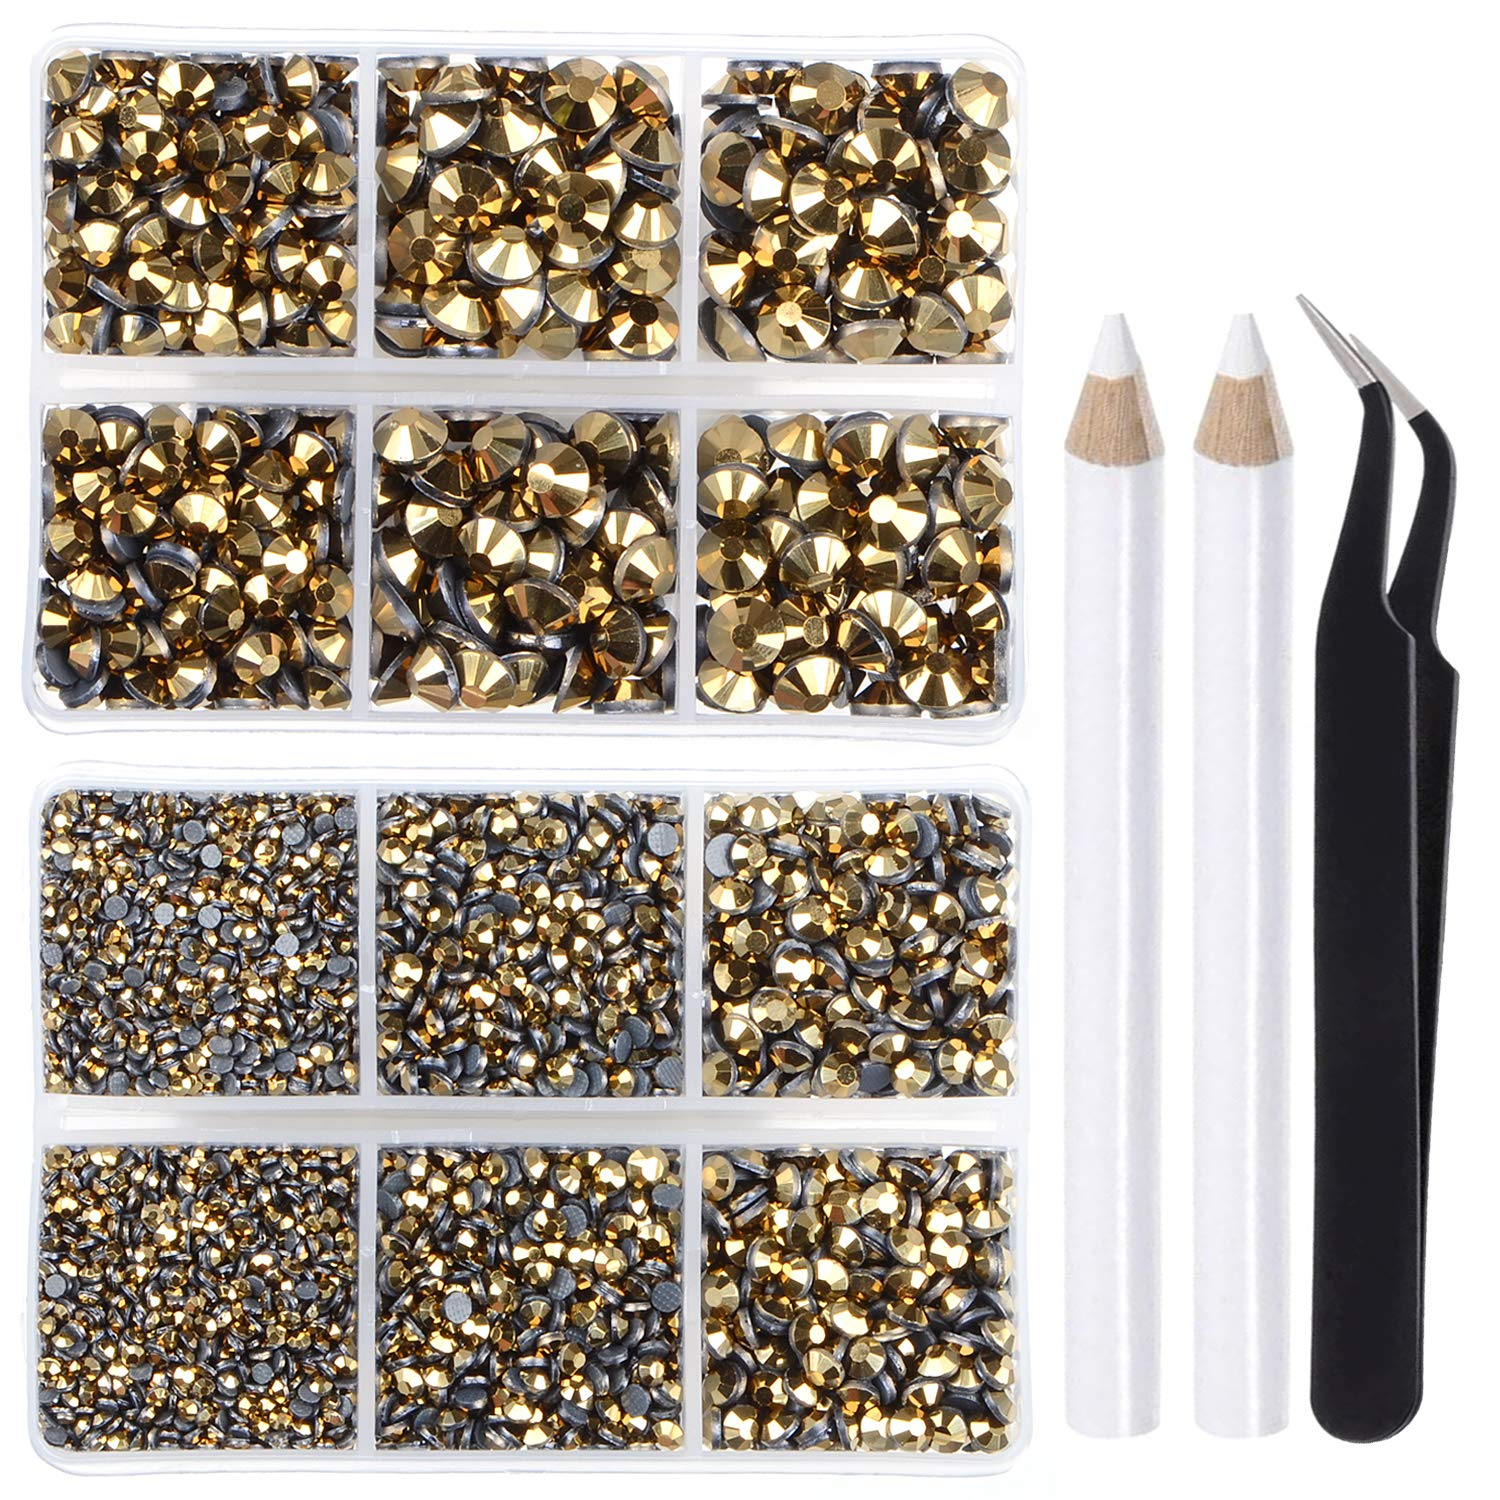 LPBeads Indefinitely 6400 Pieces Hotfix Special Campaign Rhinestones Gold 5 Flat Back Metallic